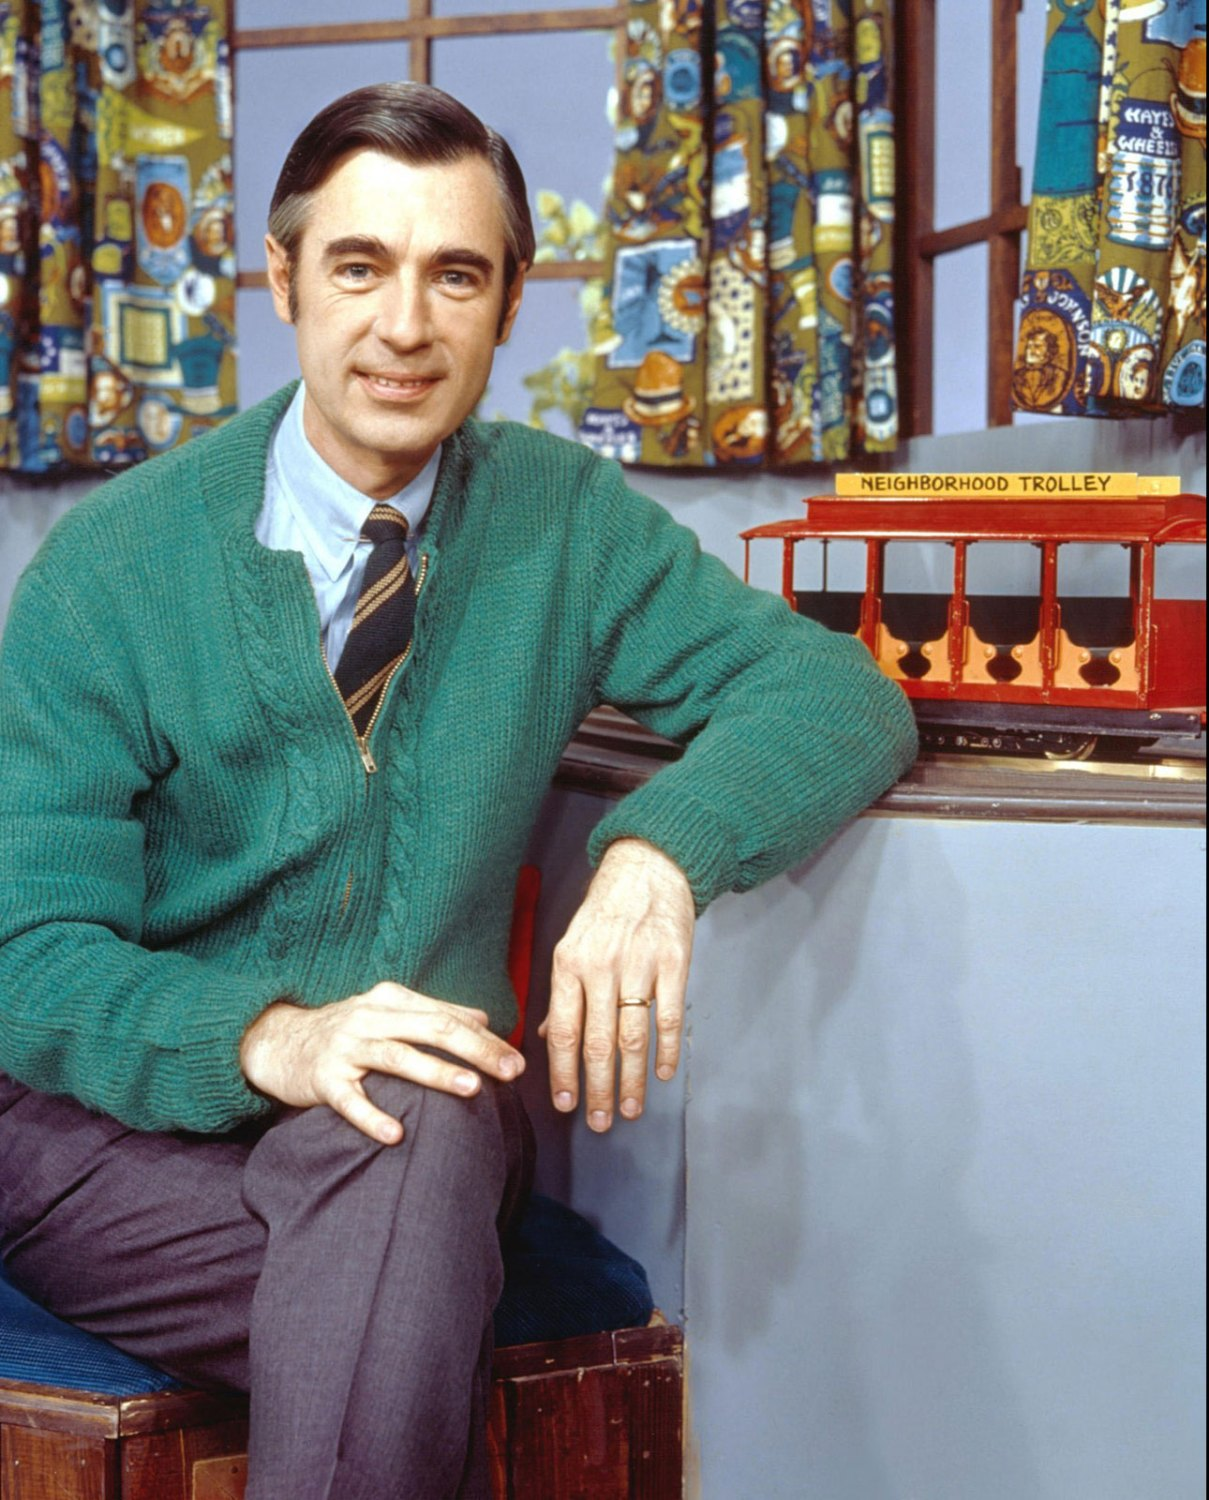 The Truth Behind Those Rumors About Mr Rogers Tattoos That Surfaced After His Death